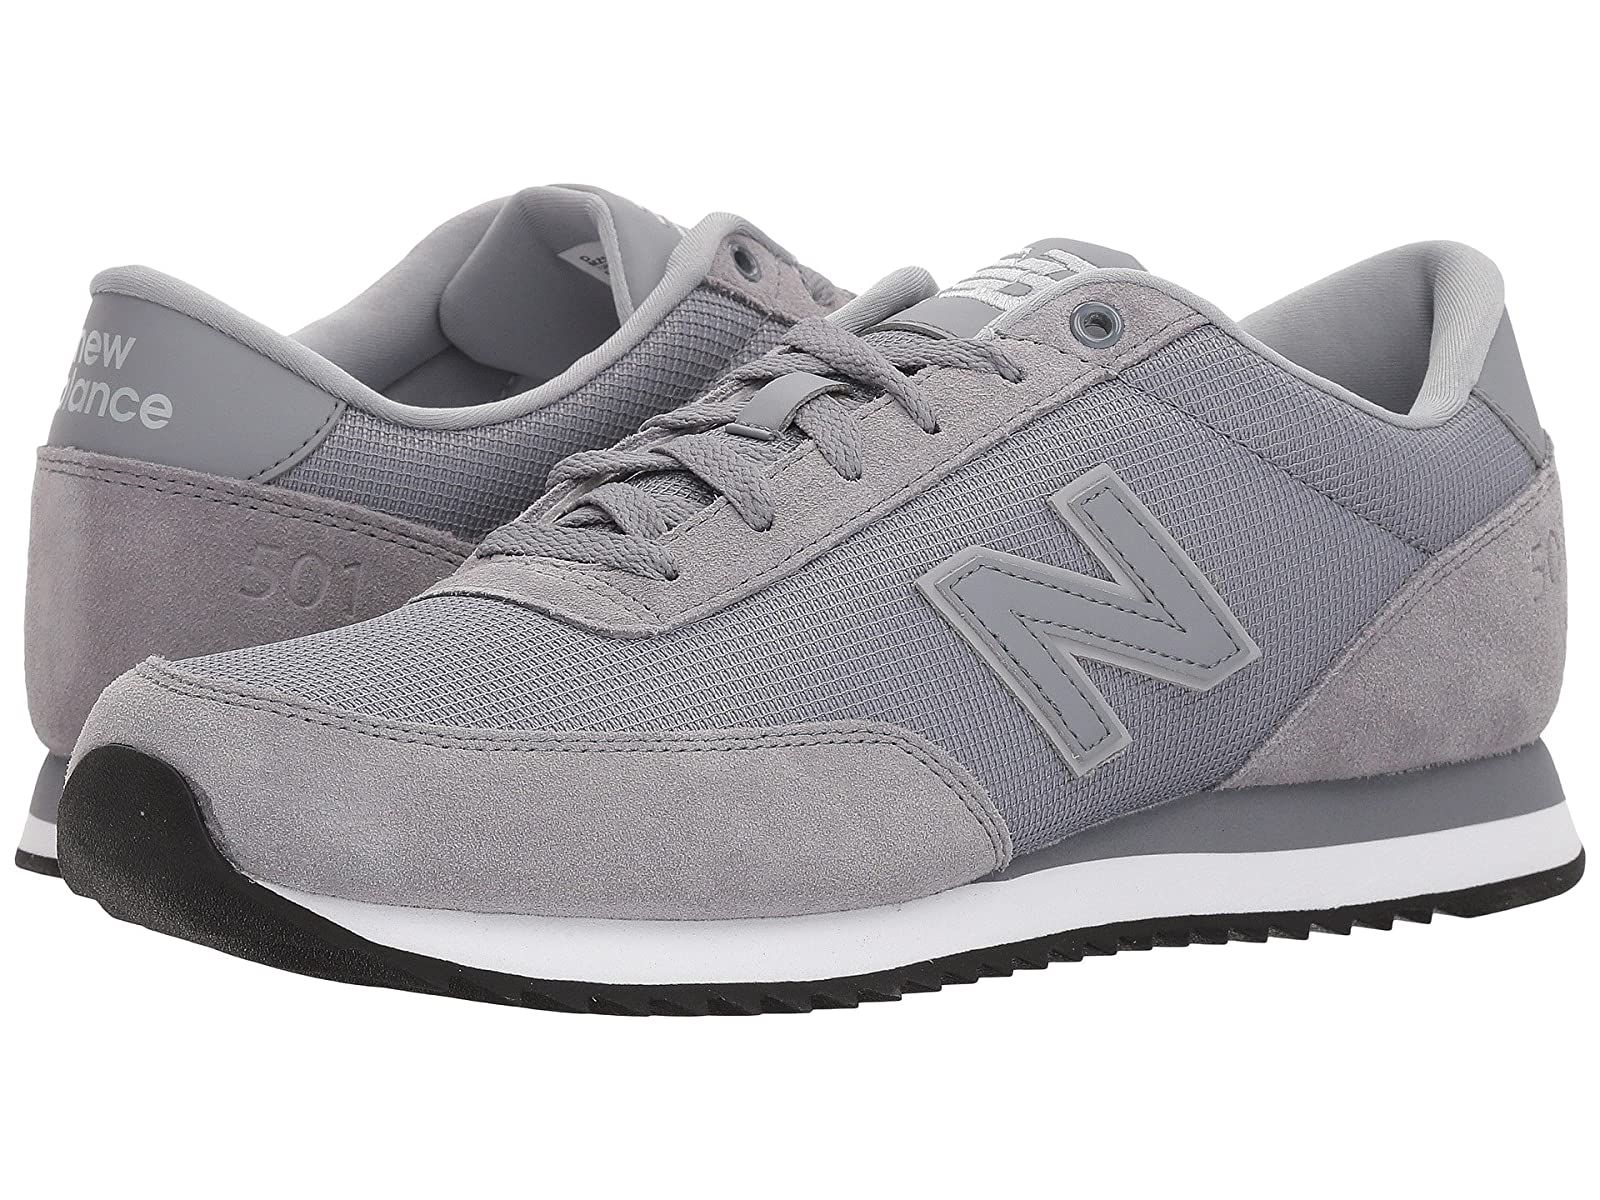 New Balance Classics MZ501v1Atmospheric grades have affordable shoes